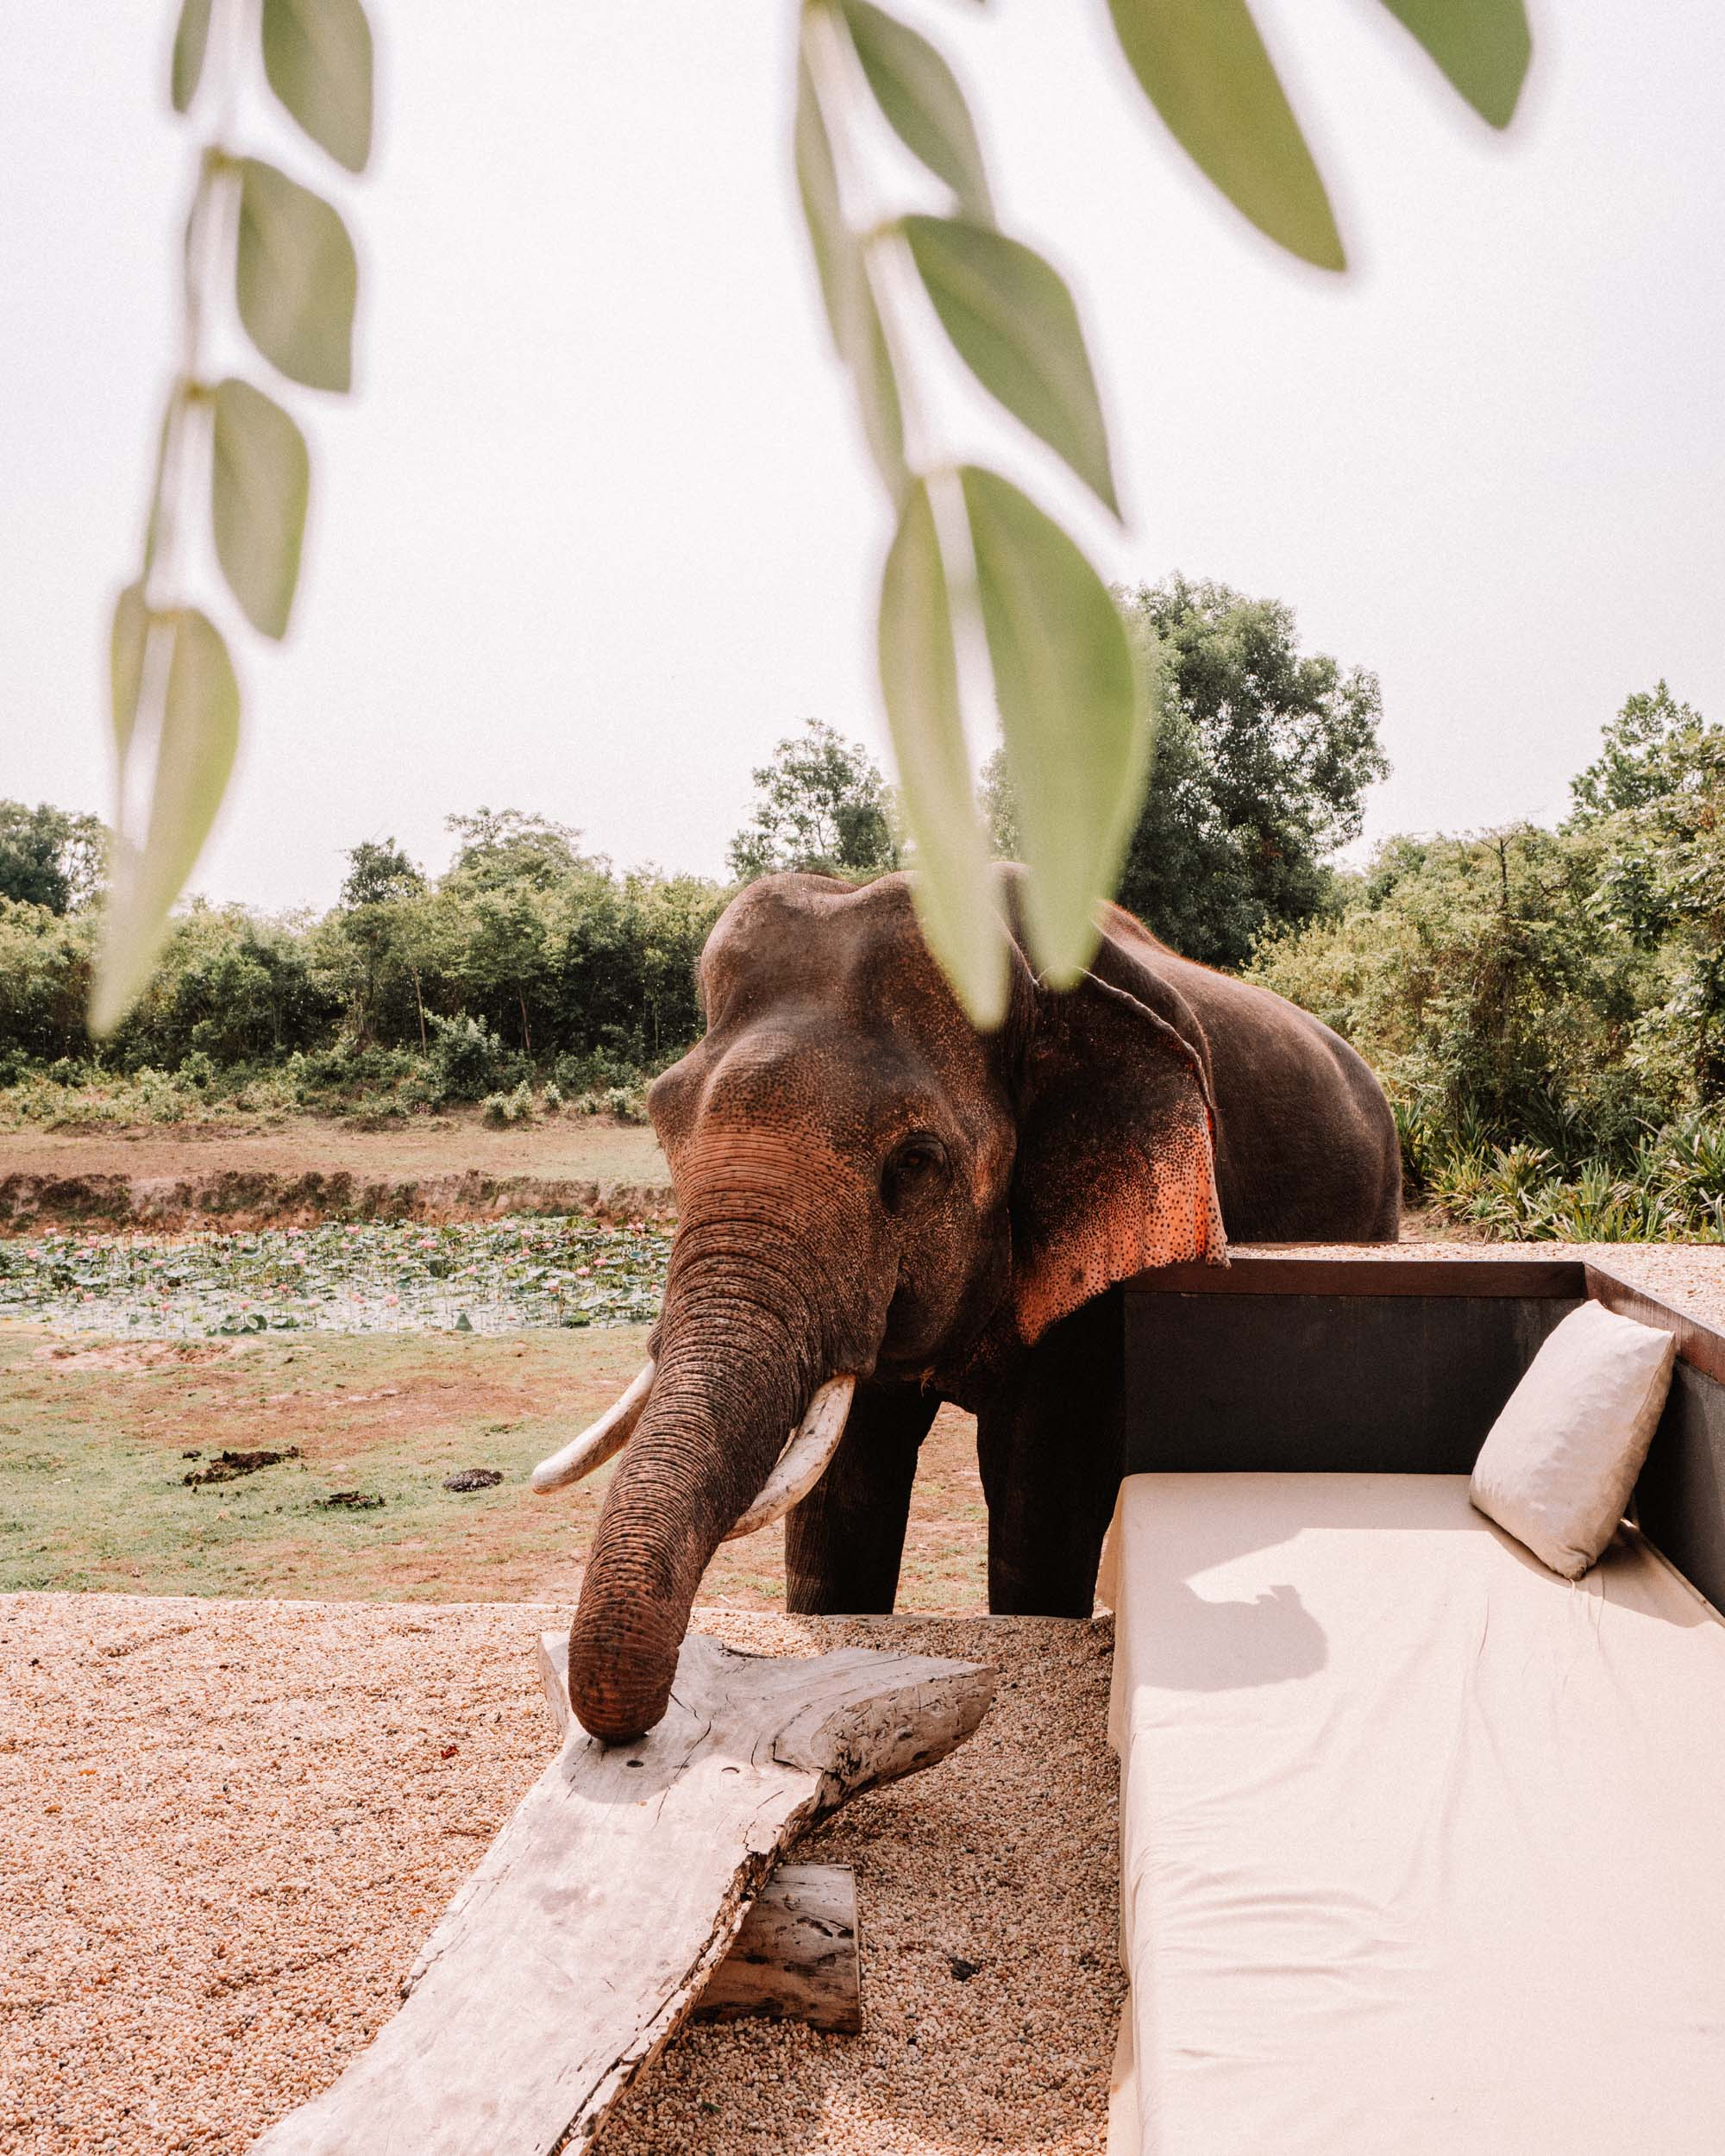 Elephant in Siem Reap Cambodia